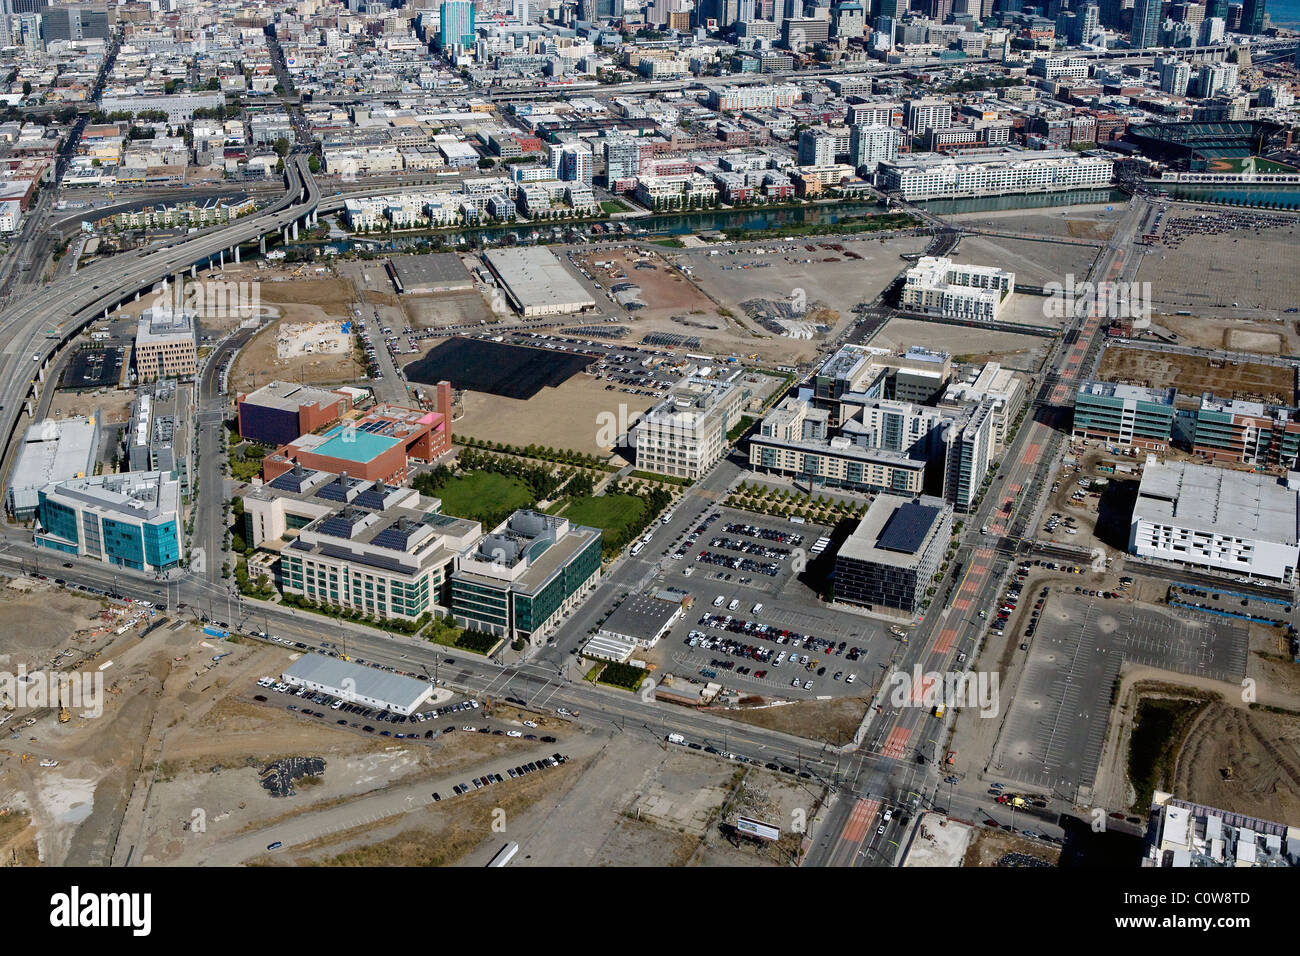 aerial view above Mission Bay biomed biotechnology UCSF University of California San Francisco - Stock Image